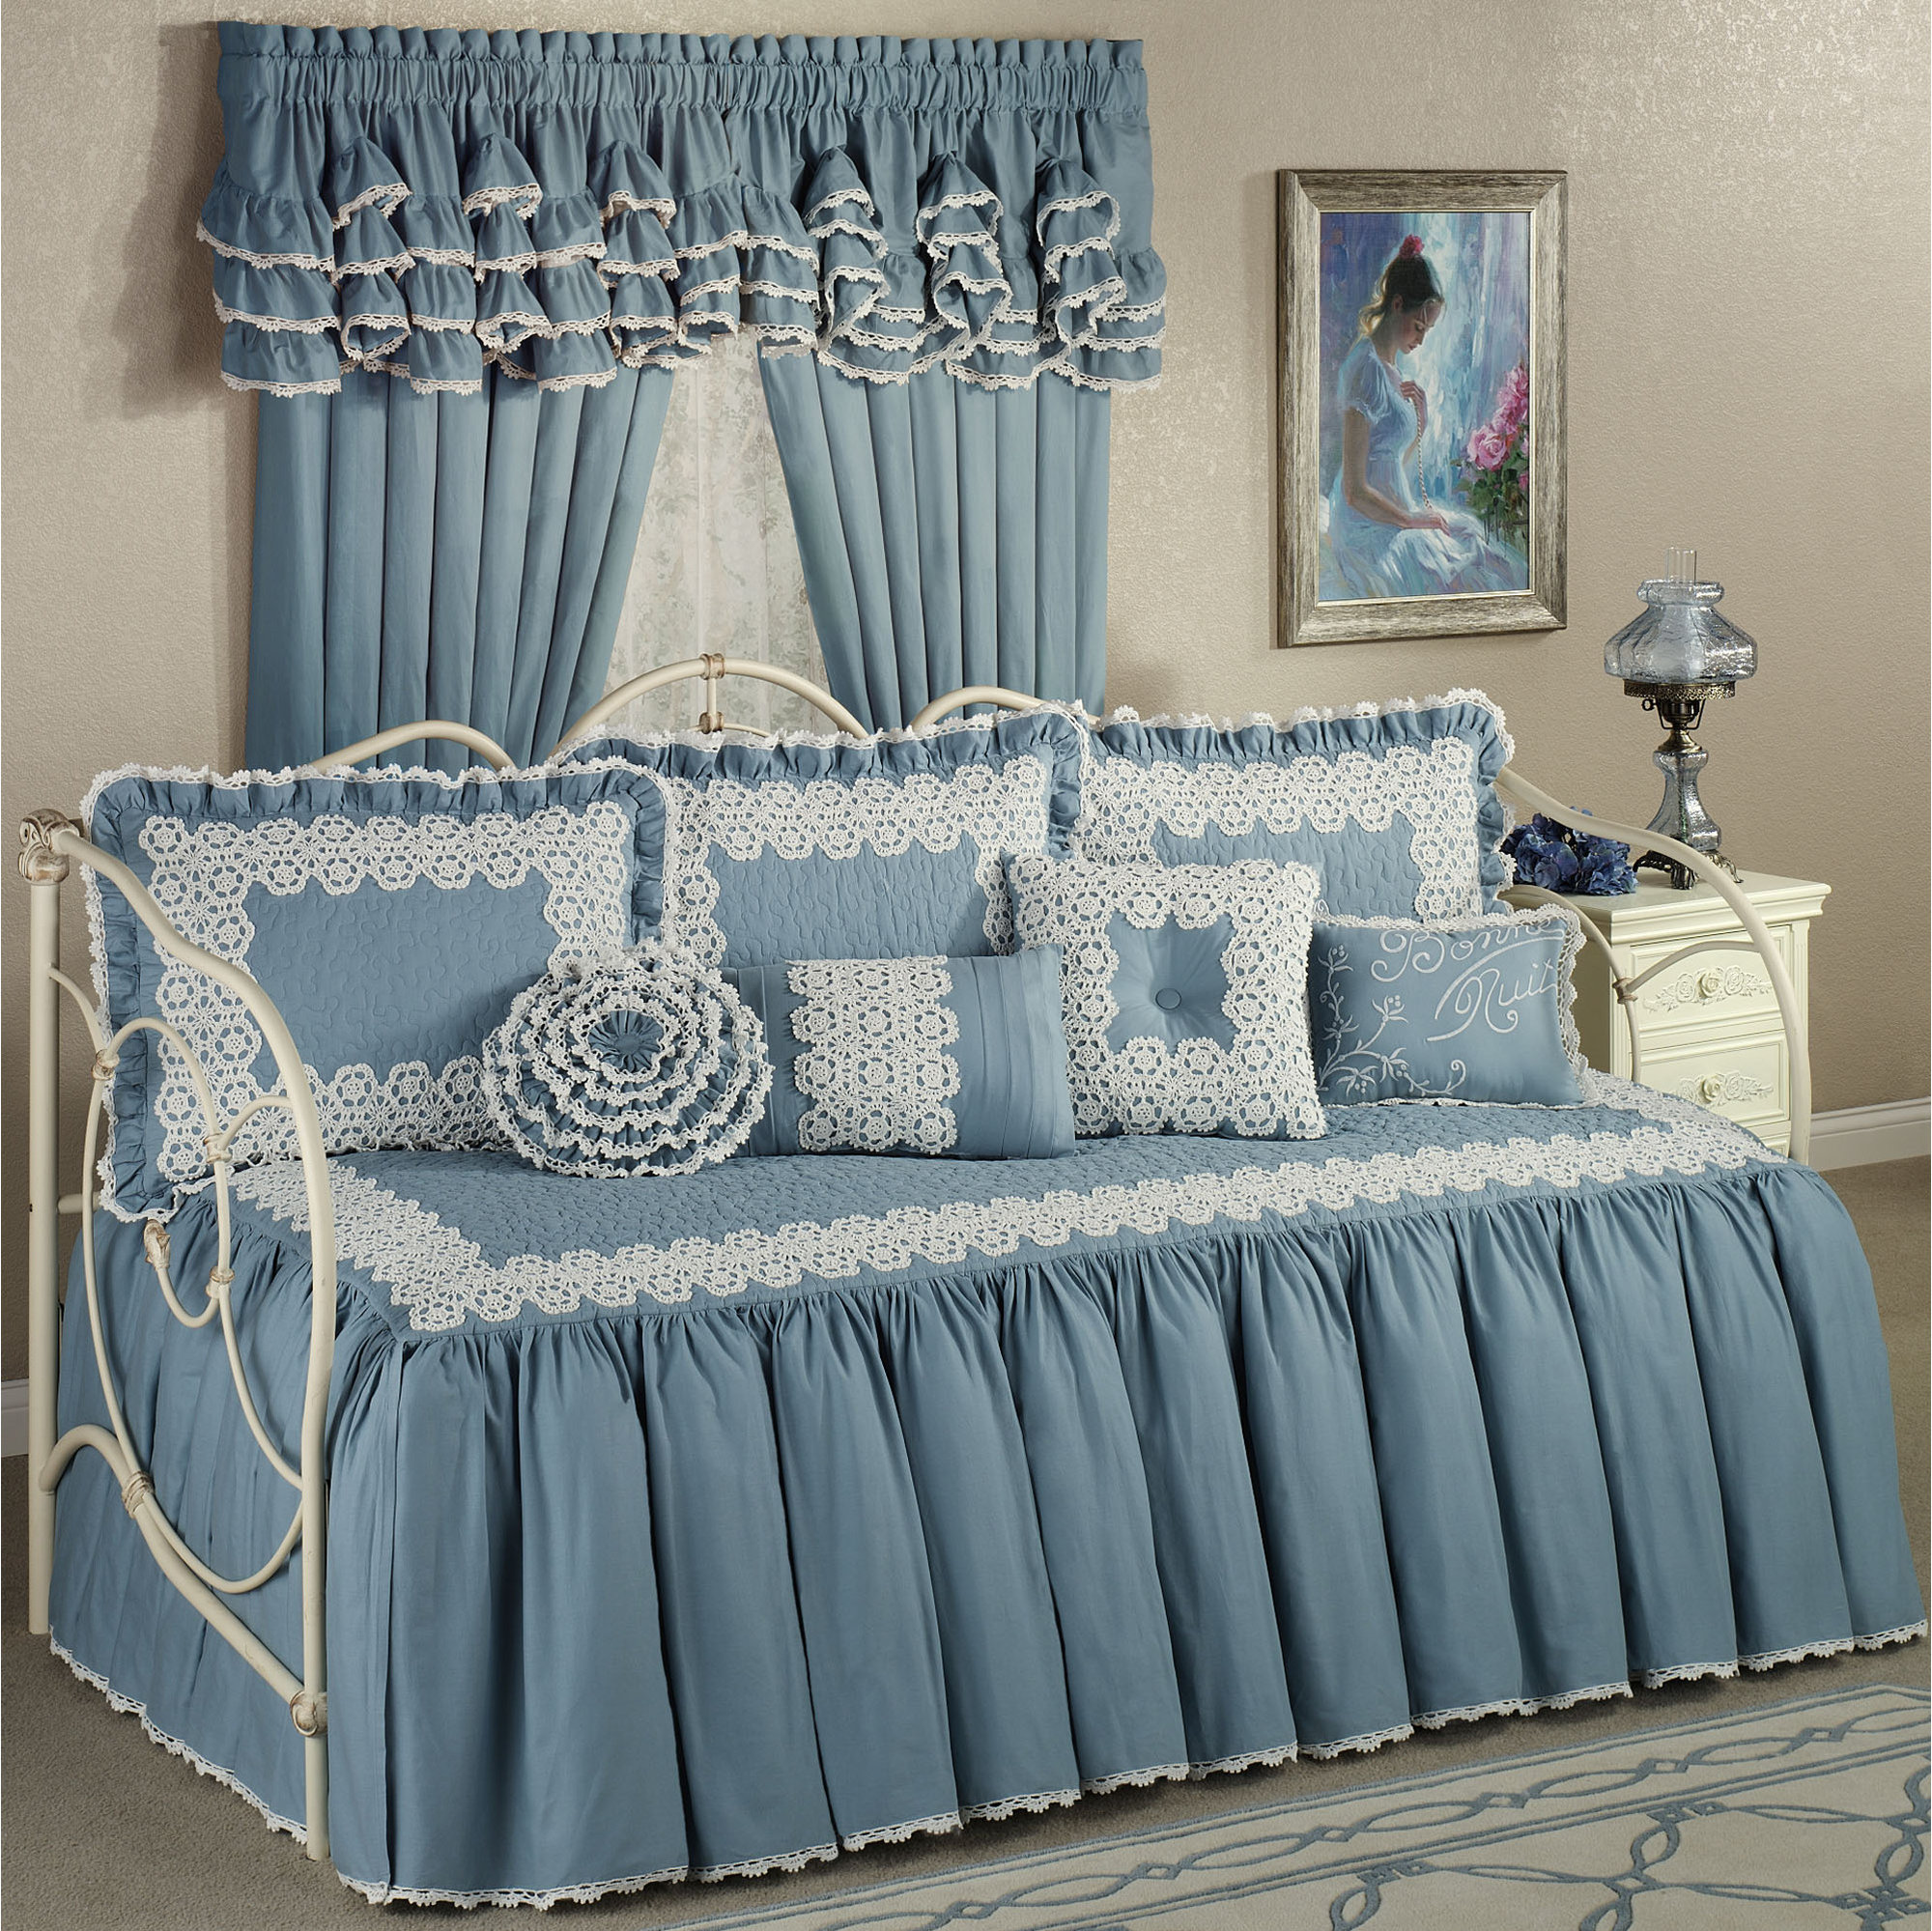 daybed bedding sets blue photo - 2